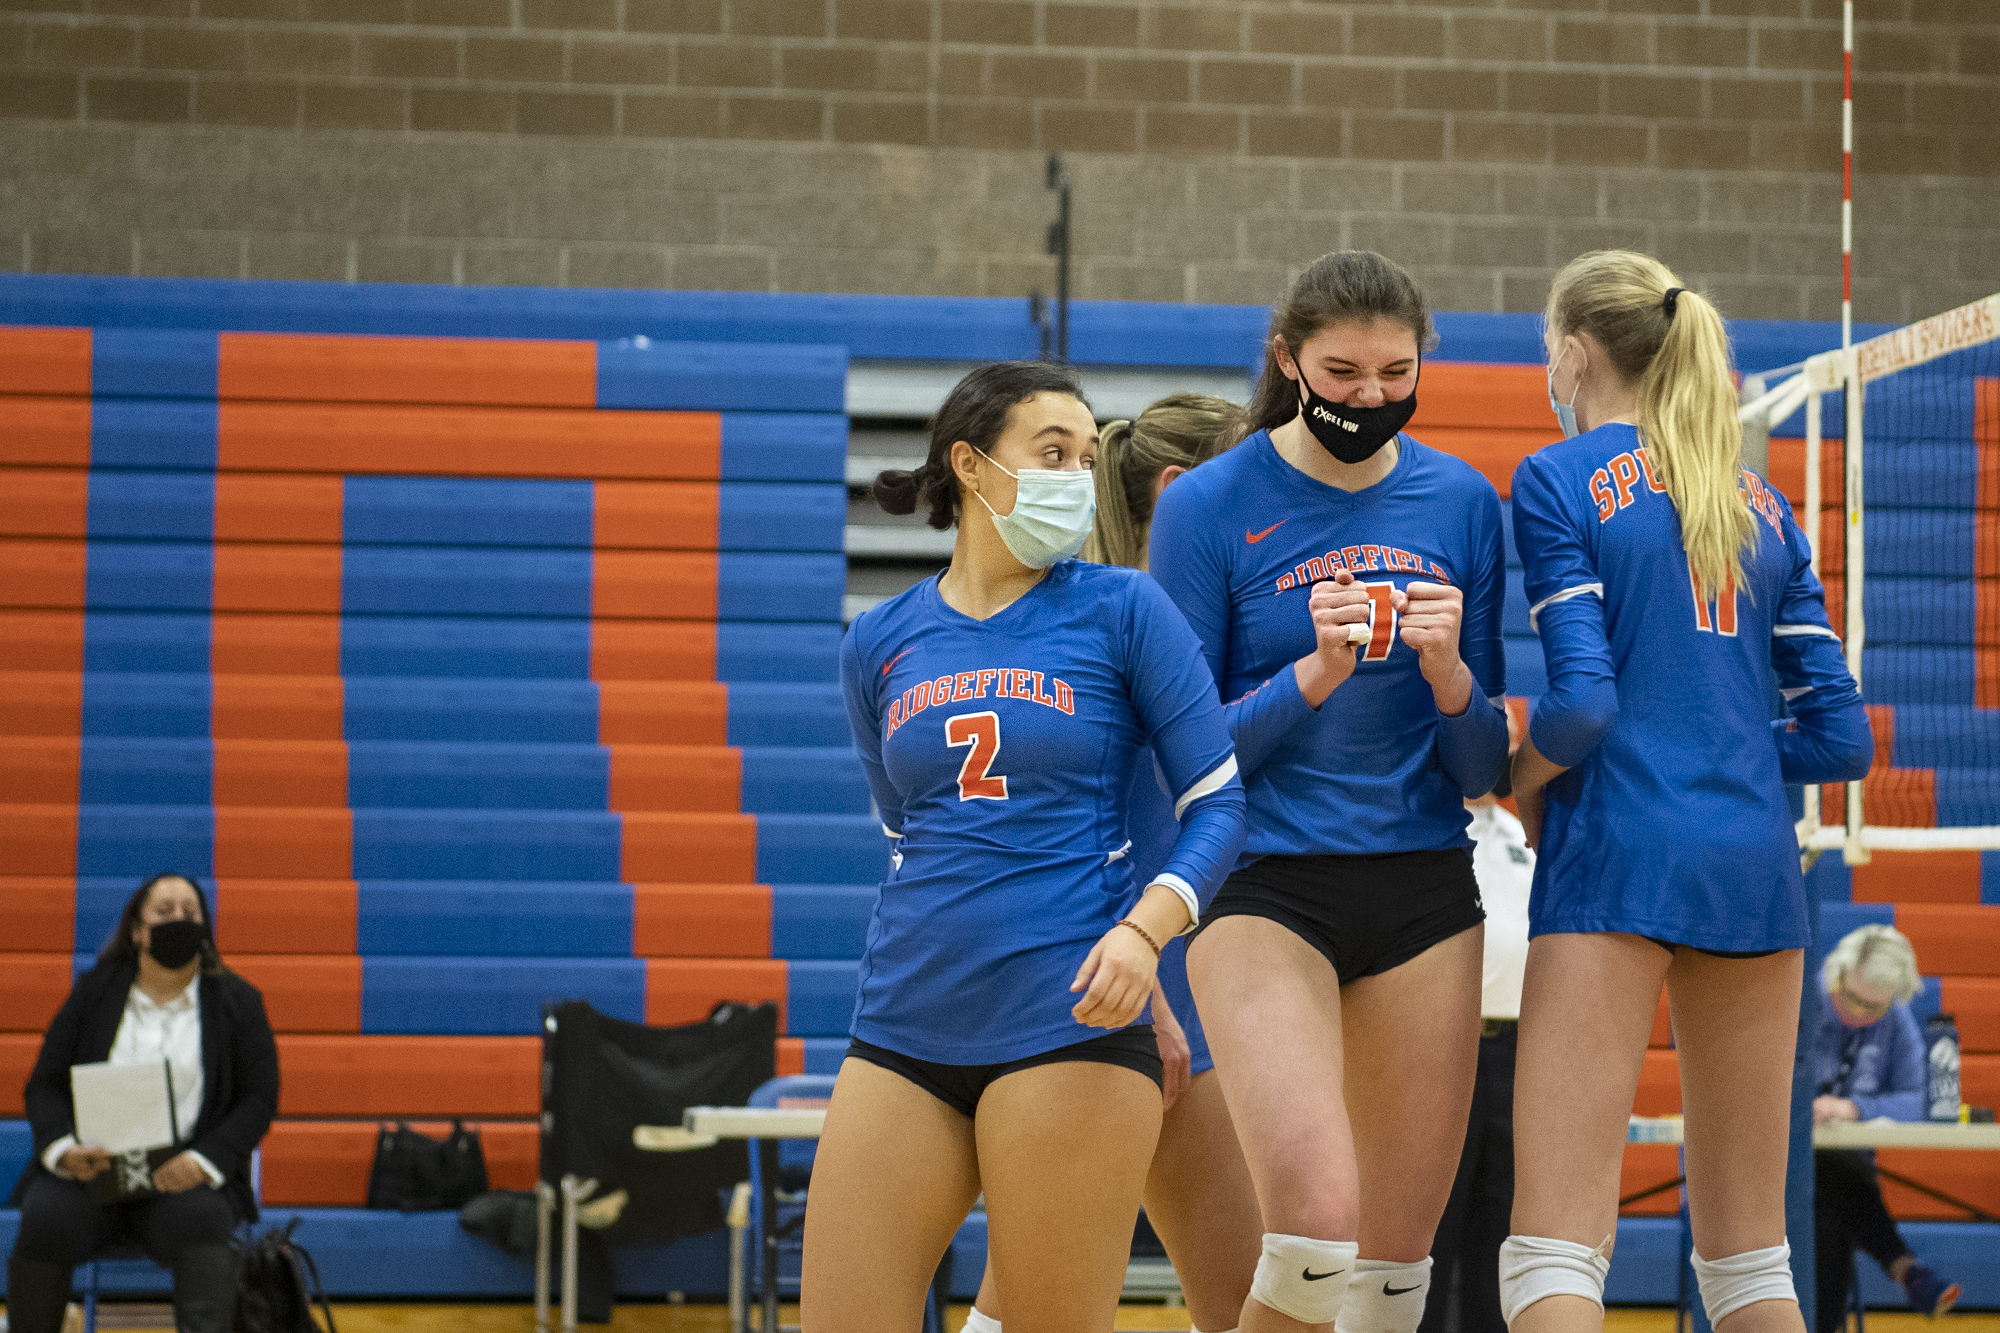 Ridgefield's Kohana Fukuchi, left, looks back toward Ali Andrew, center, who shows frustration over reading a lob hit wrong on Tuesday, February 16, 2021, at Ridgefield High School. Ridgefield won 25-20, 25-9, 25-12 over Mark Morris in its first volleyball match since winning the 2A State Championship in fall 2019.